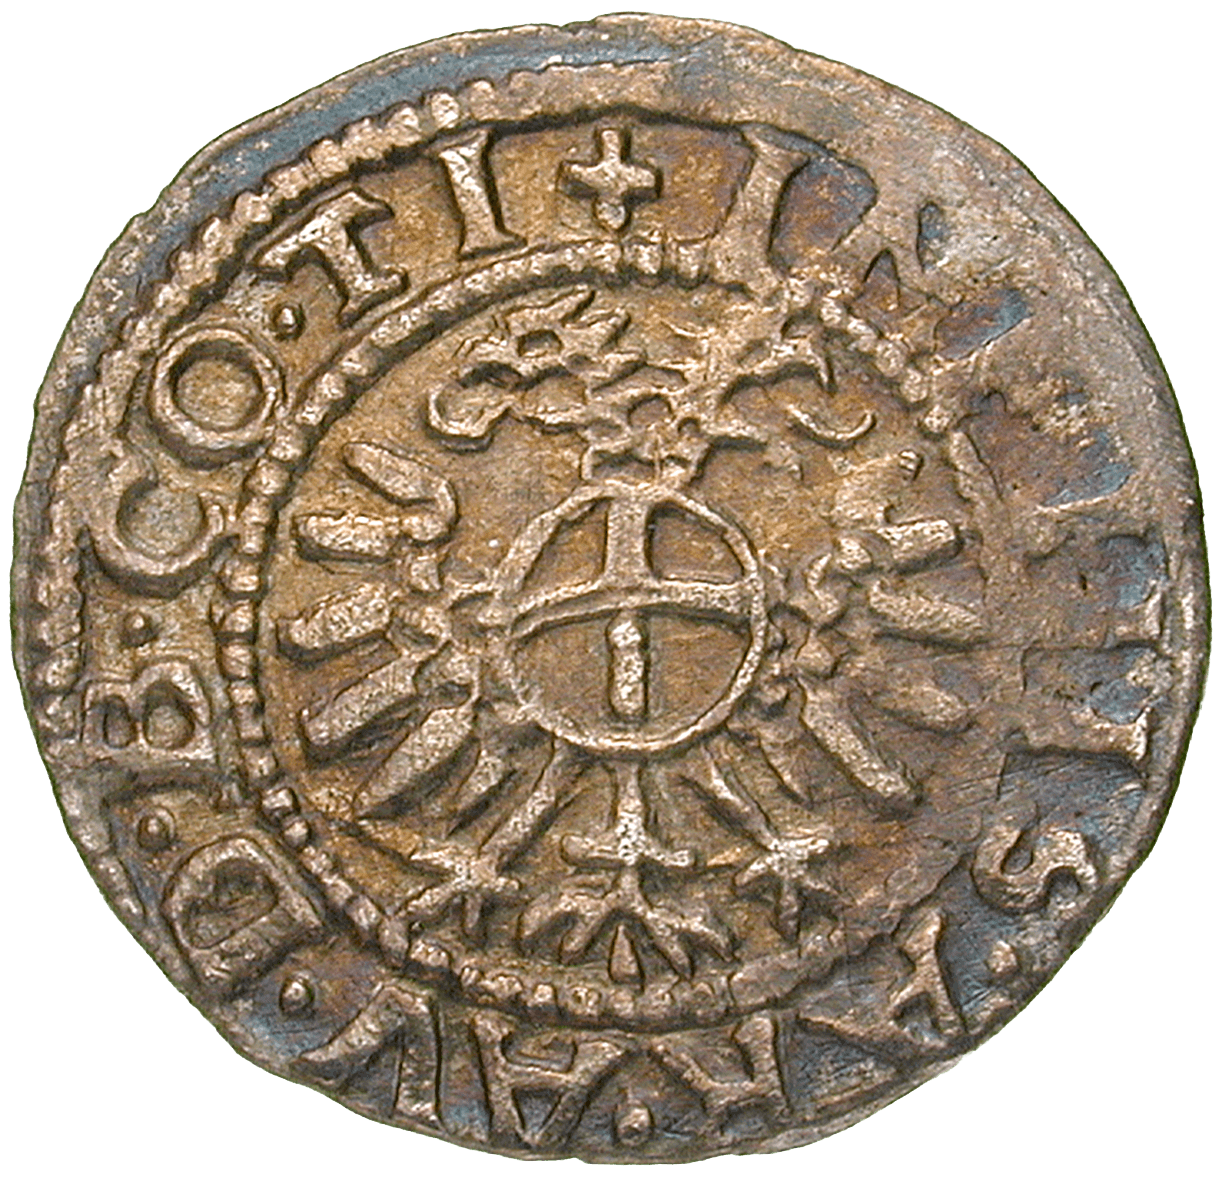 Holy Roman Empire, County of Tyrol, Ferdinand I, Kreuzer undated, Hall (reverse)